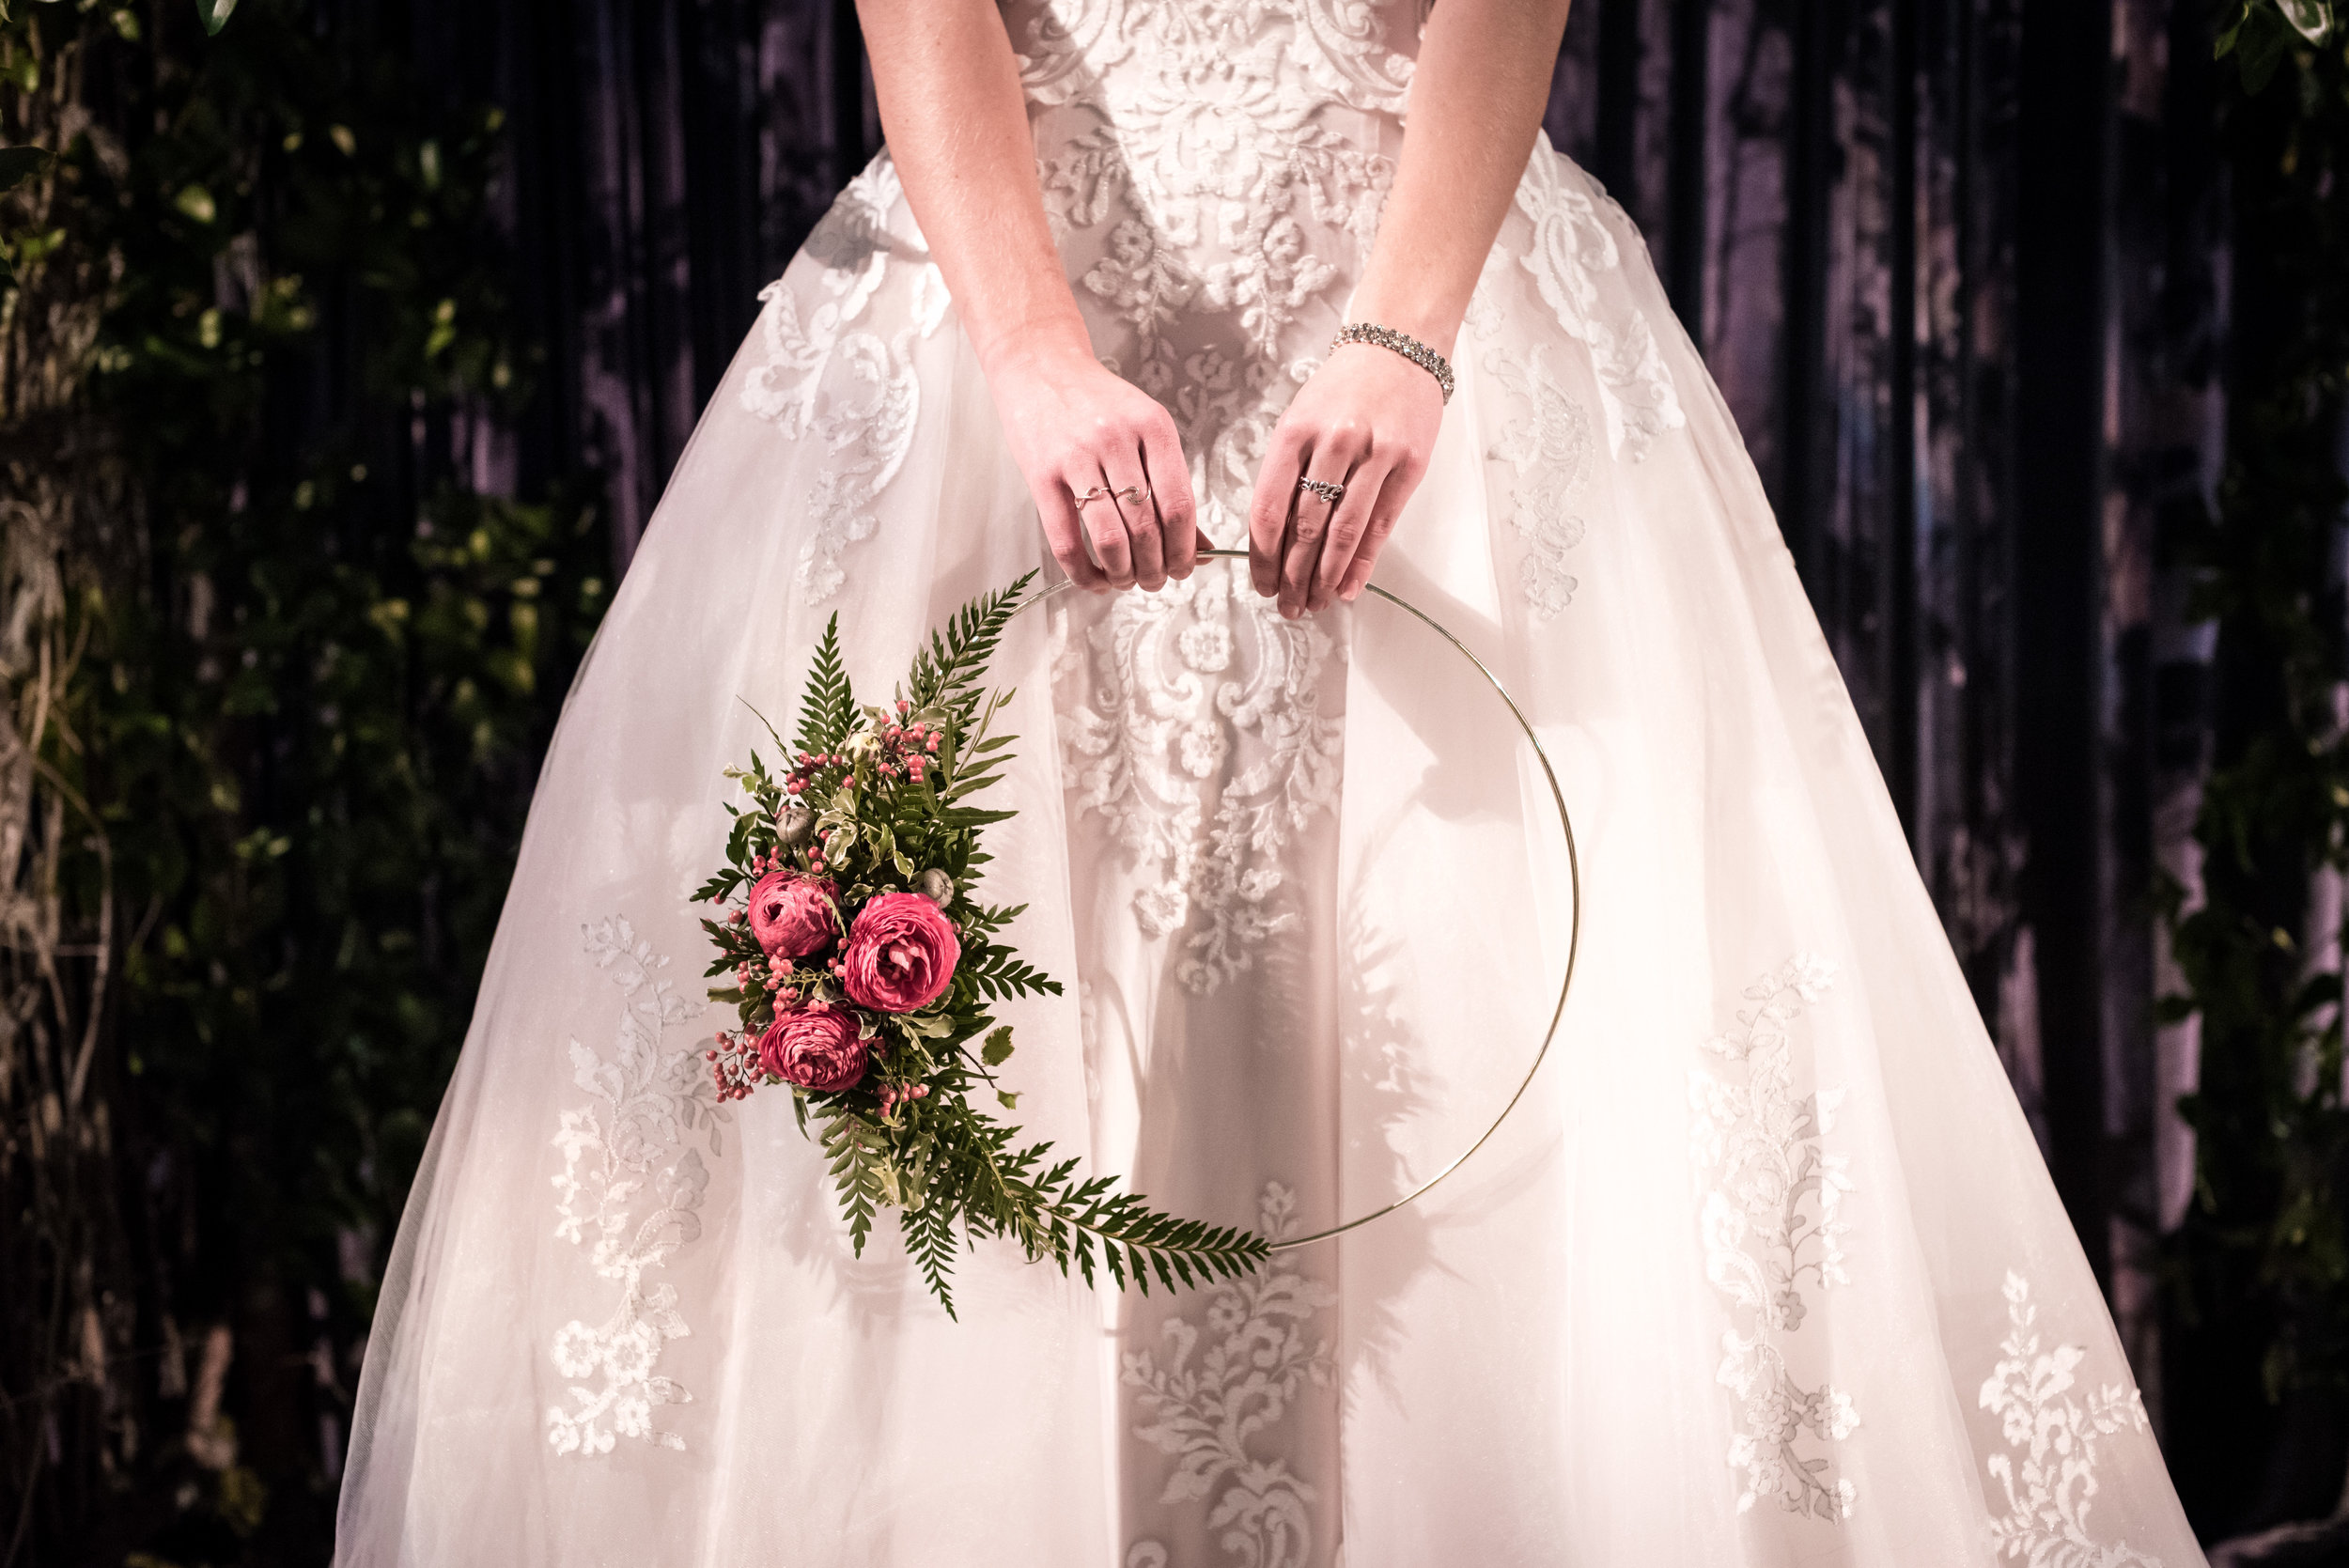 Unique bouquets and floral arrangements created on site by the most desired floral designers.